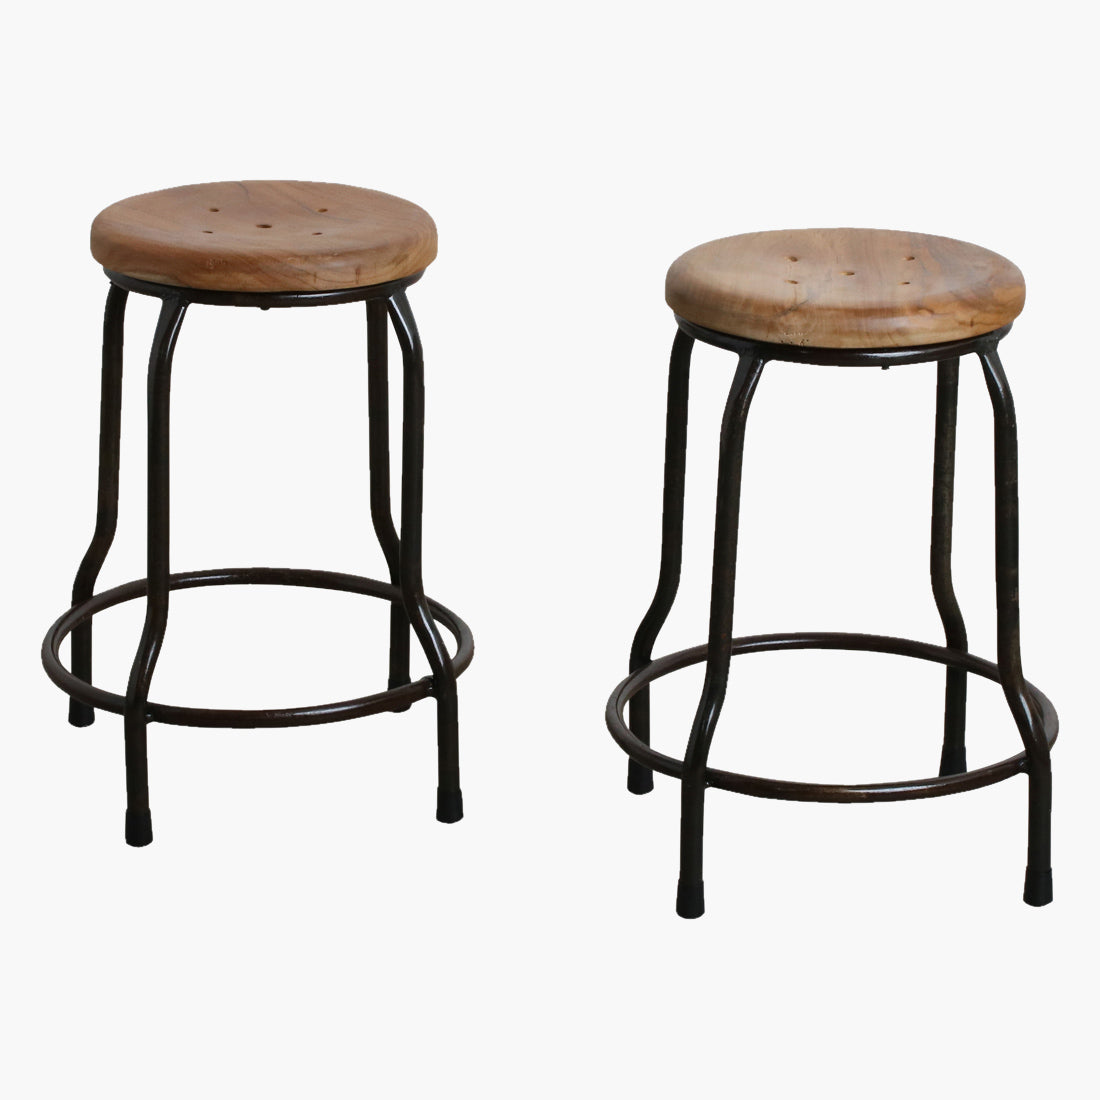 Warung stool natural